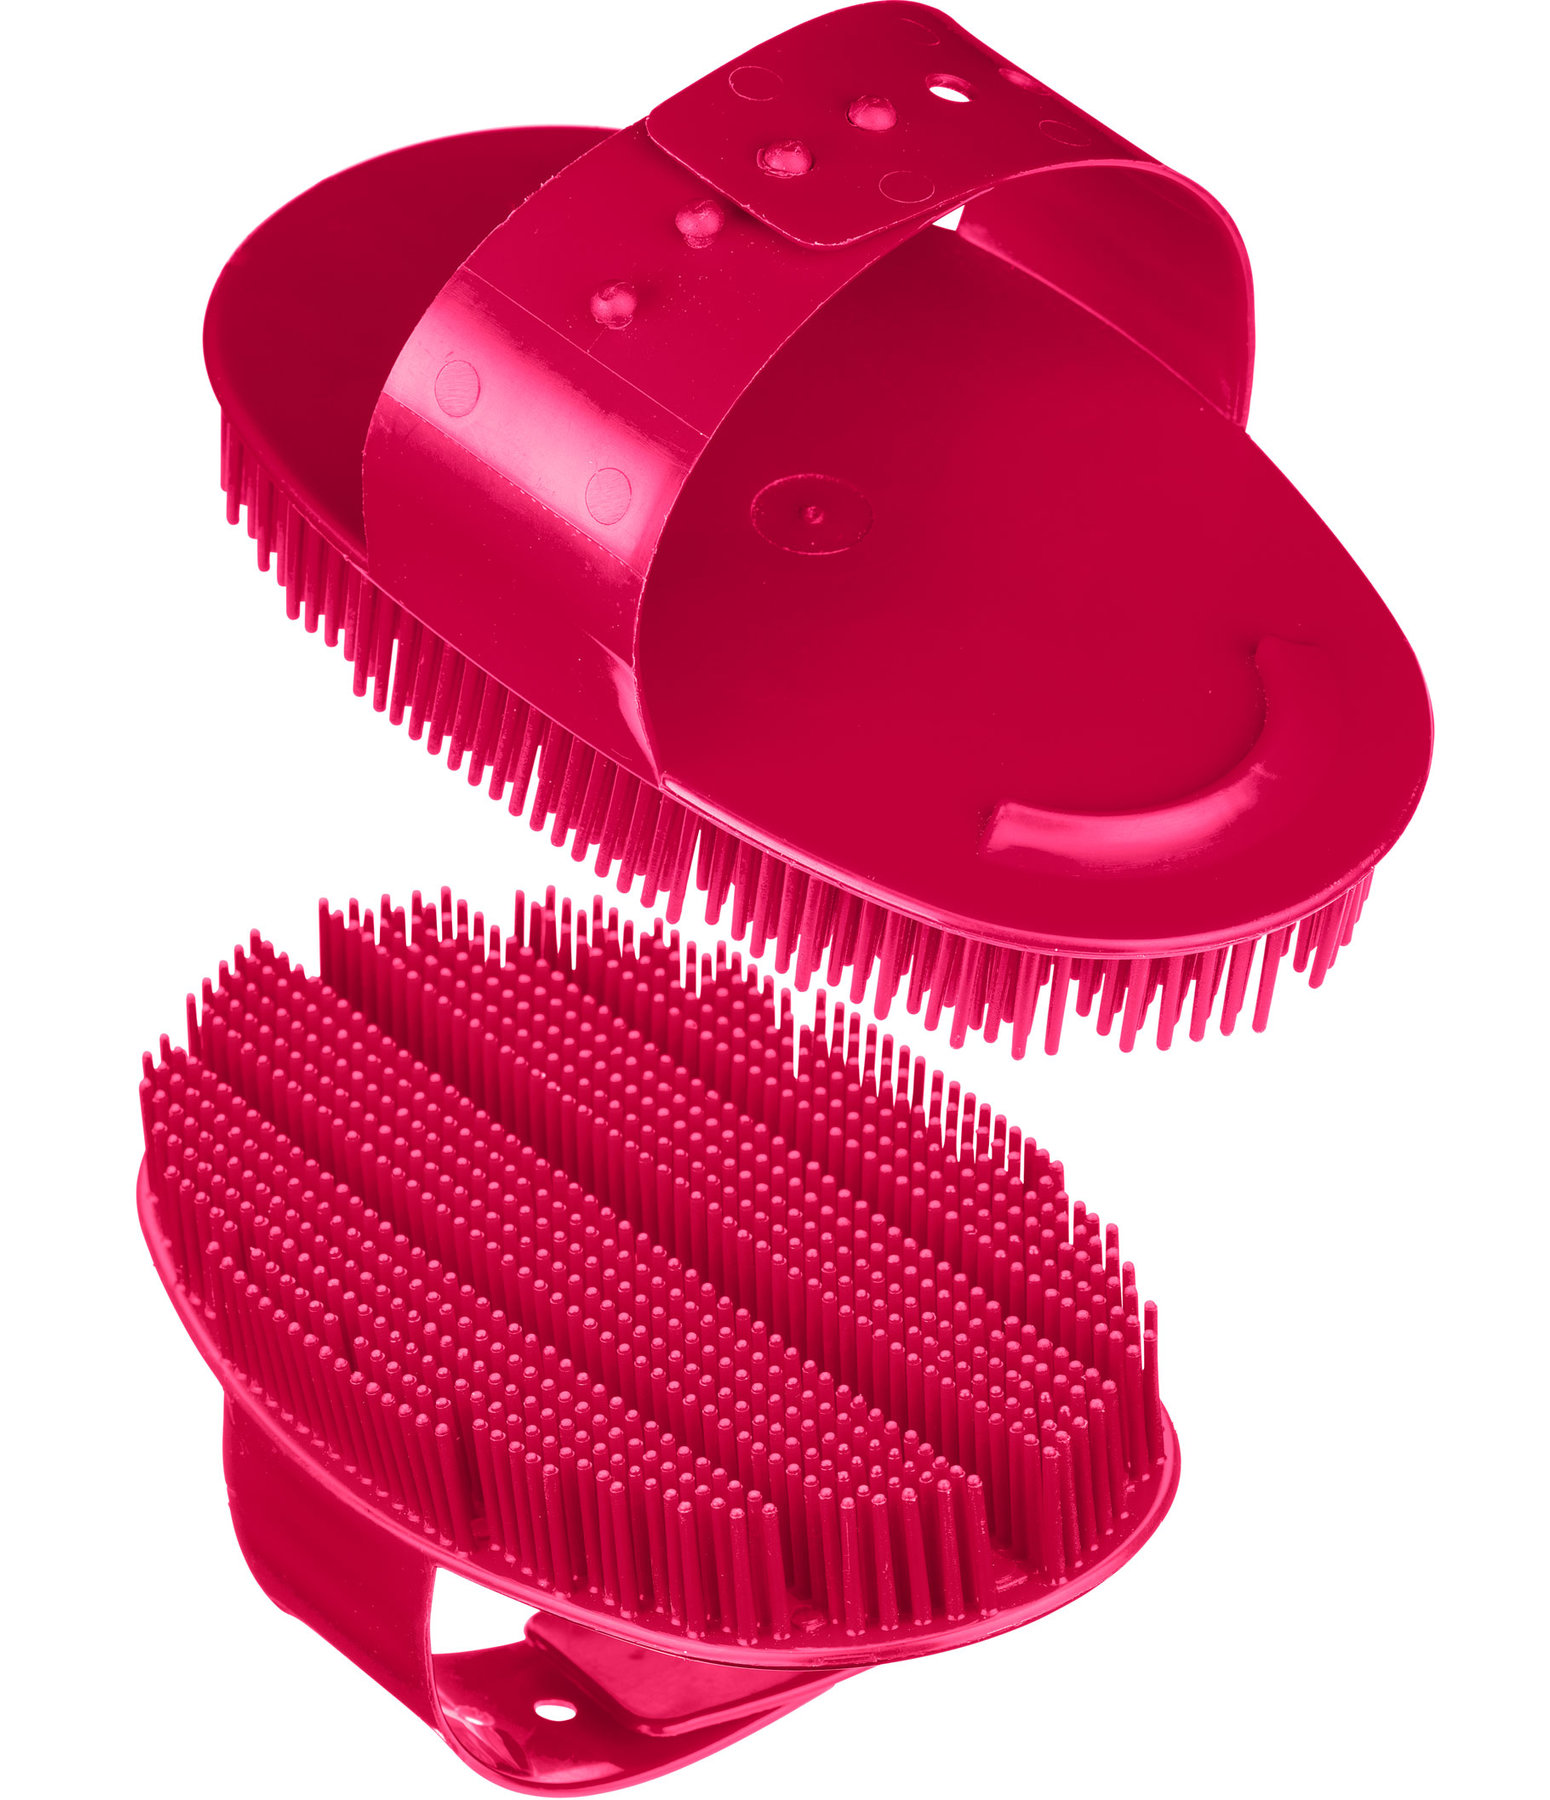 Curry Comb Pro